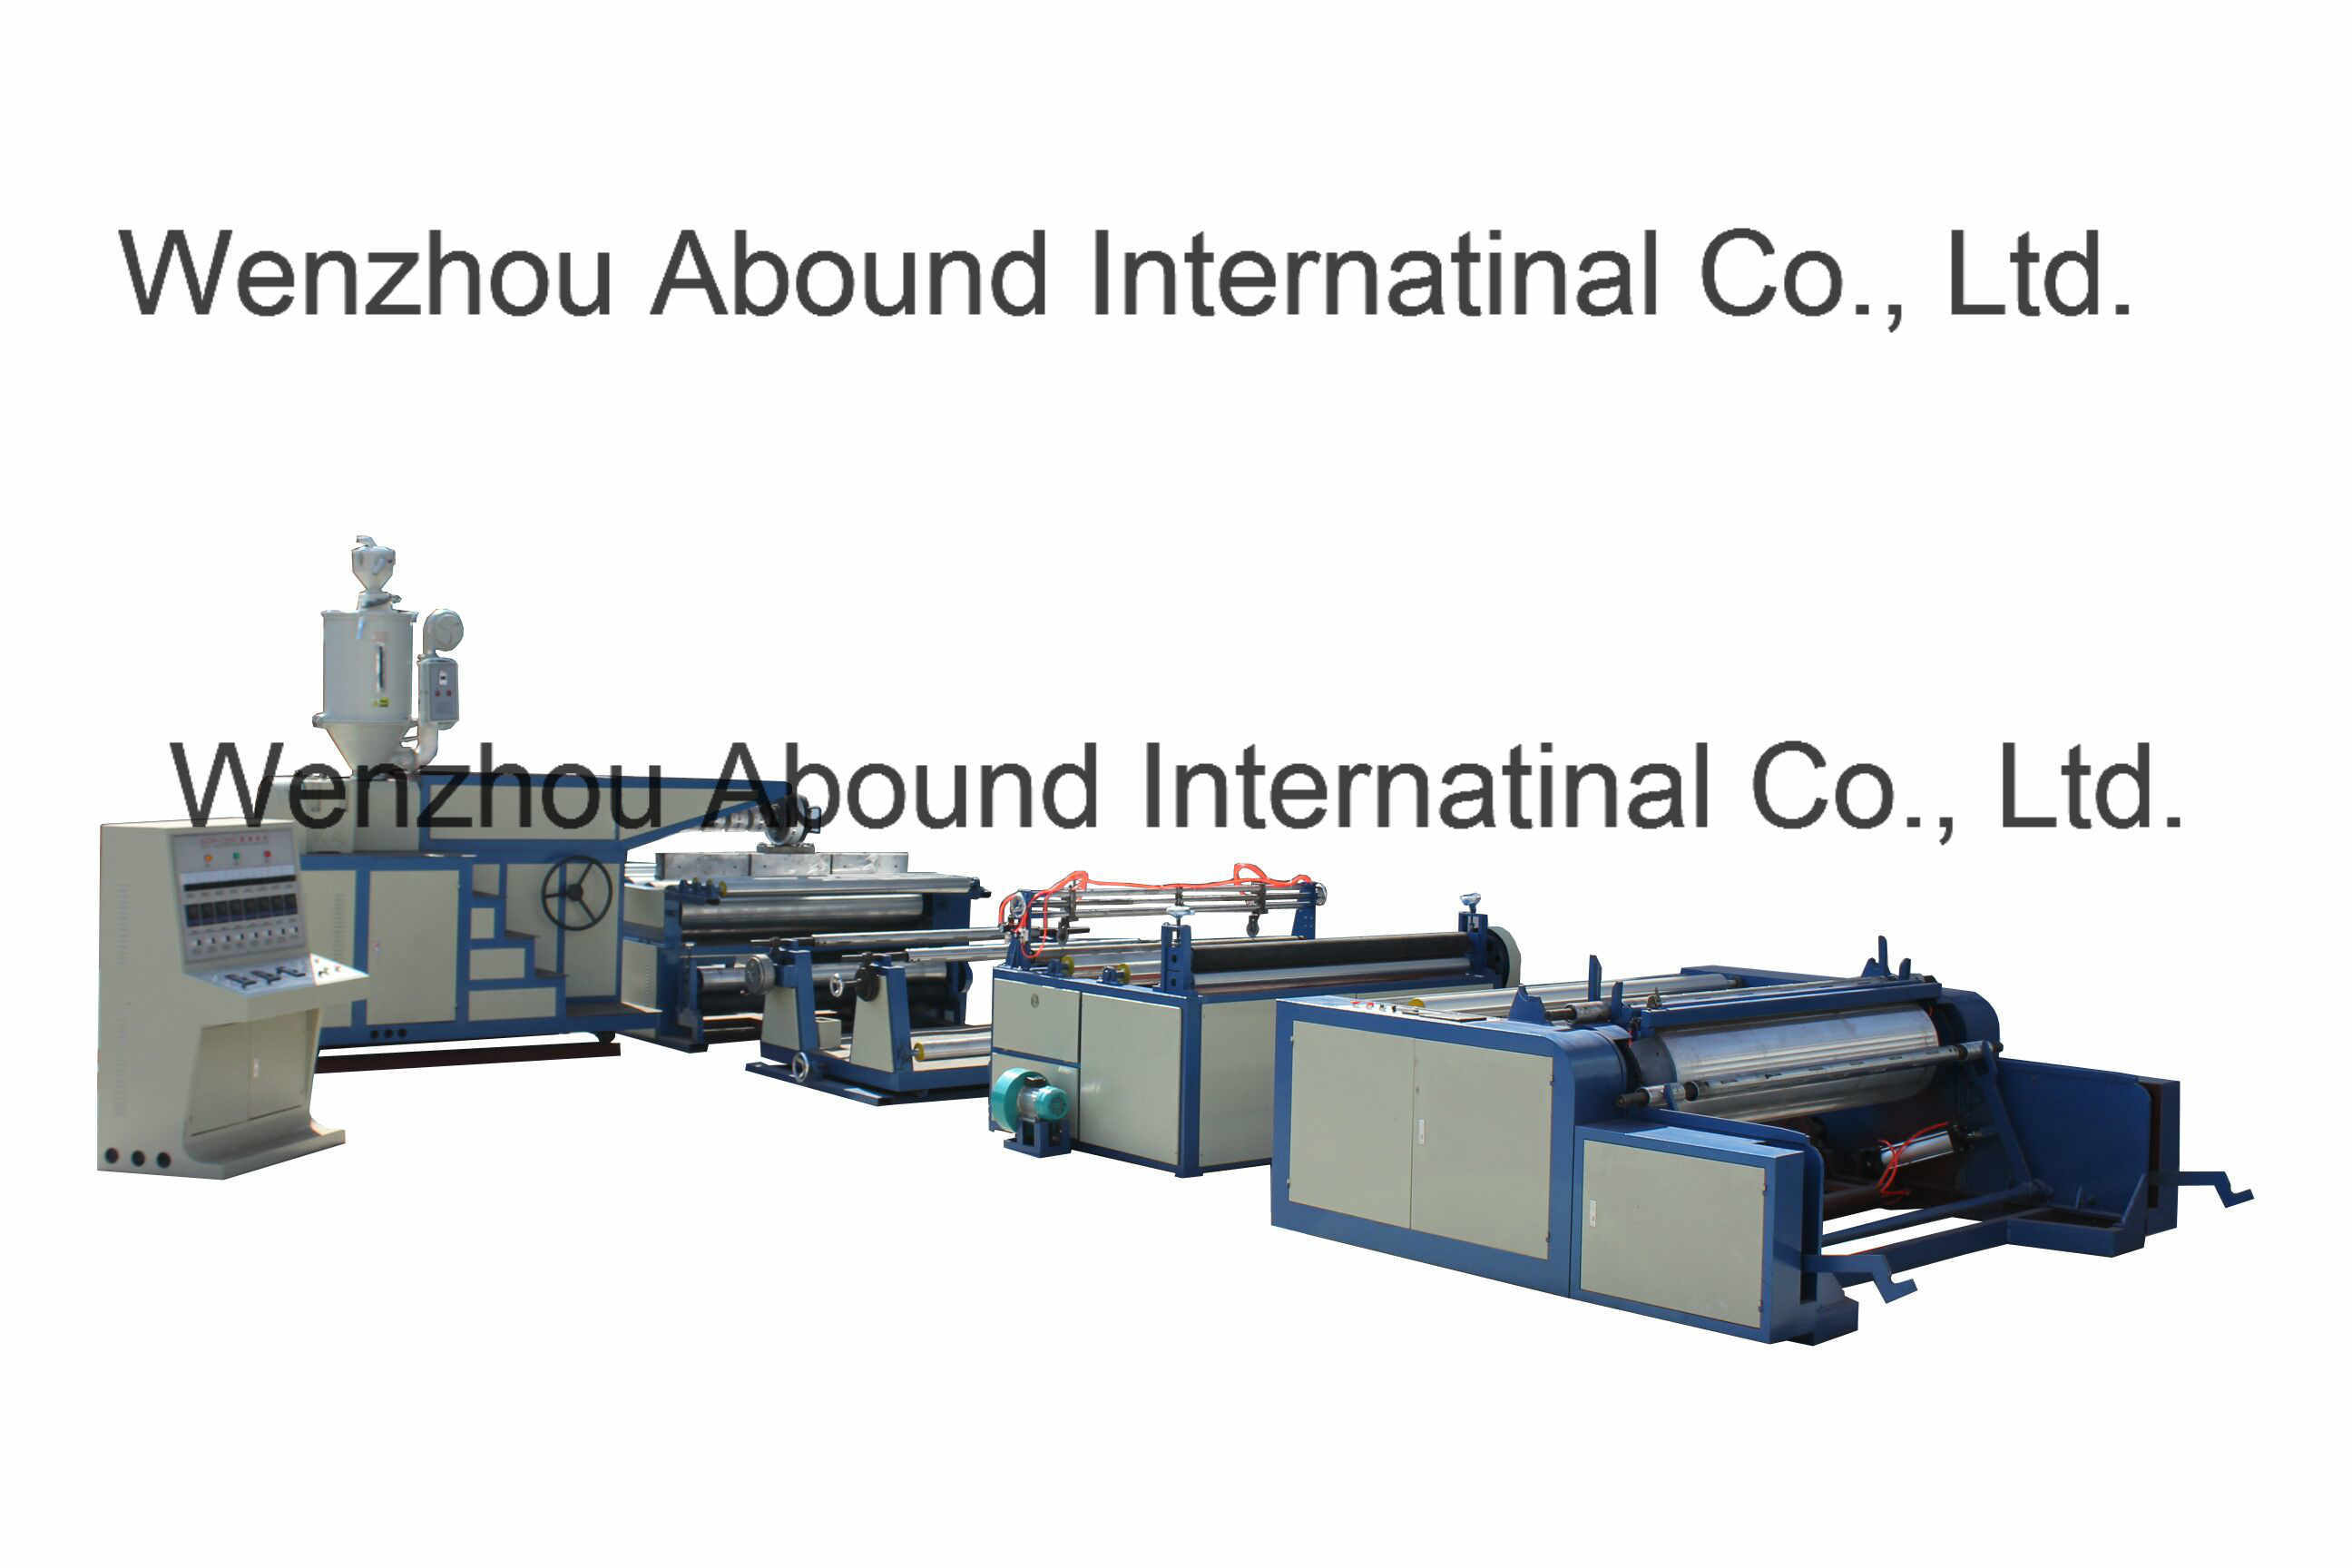 Non Woven Lamination Machine of Professional Supplier